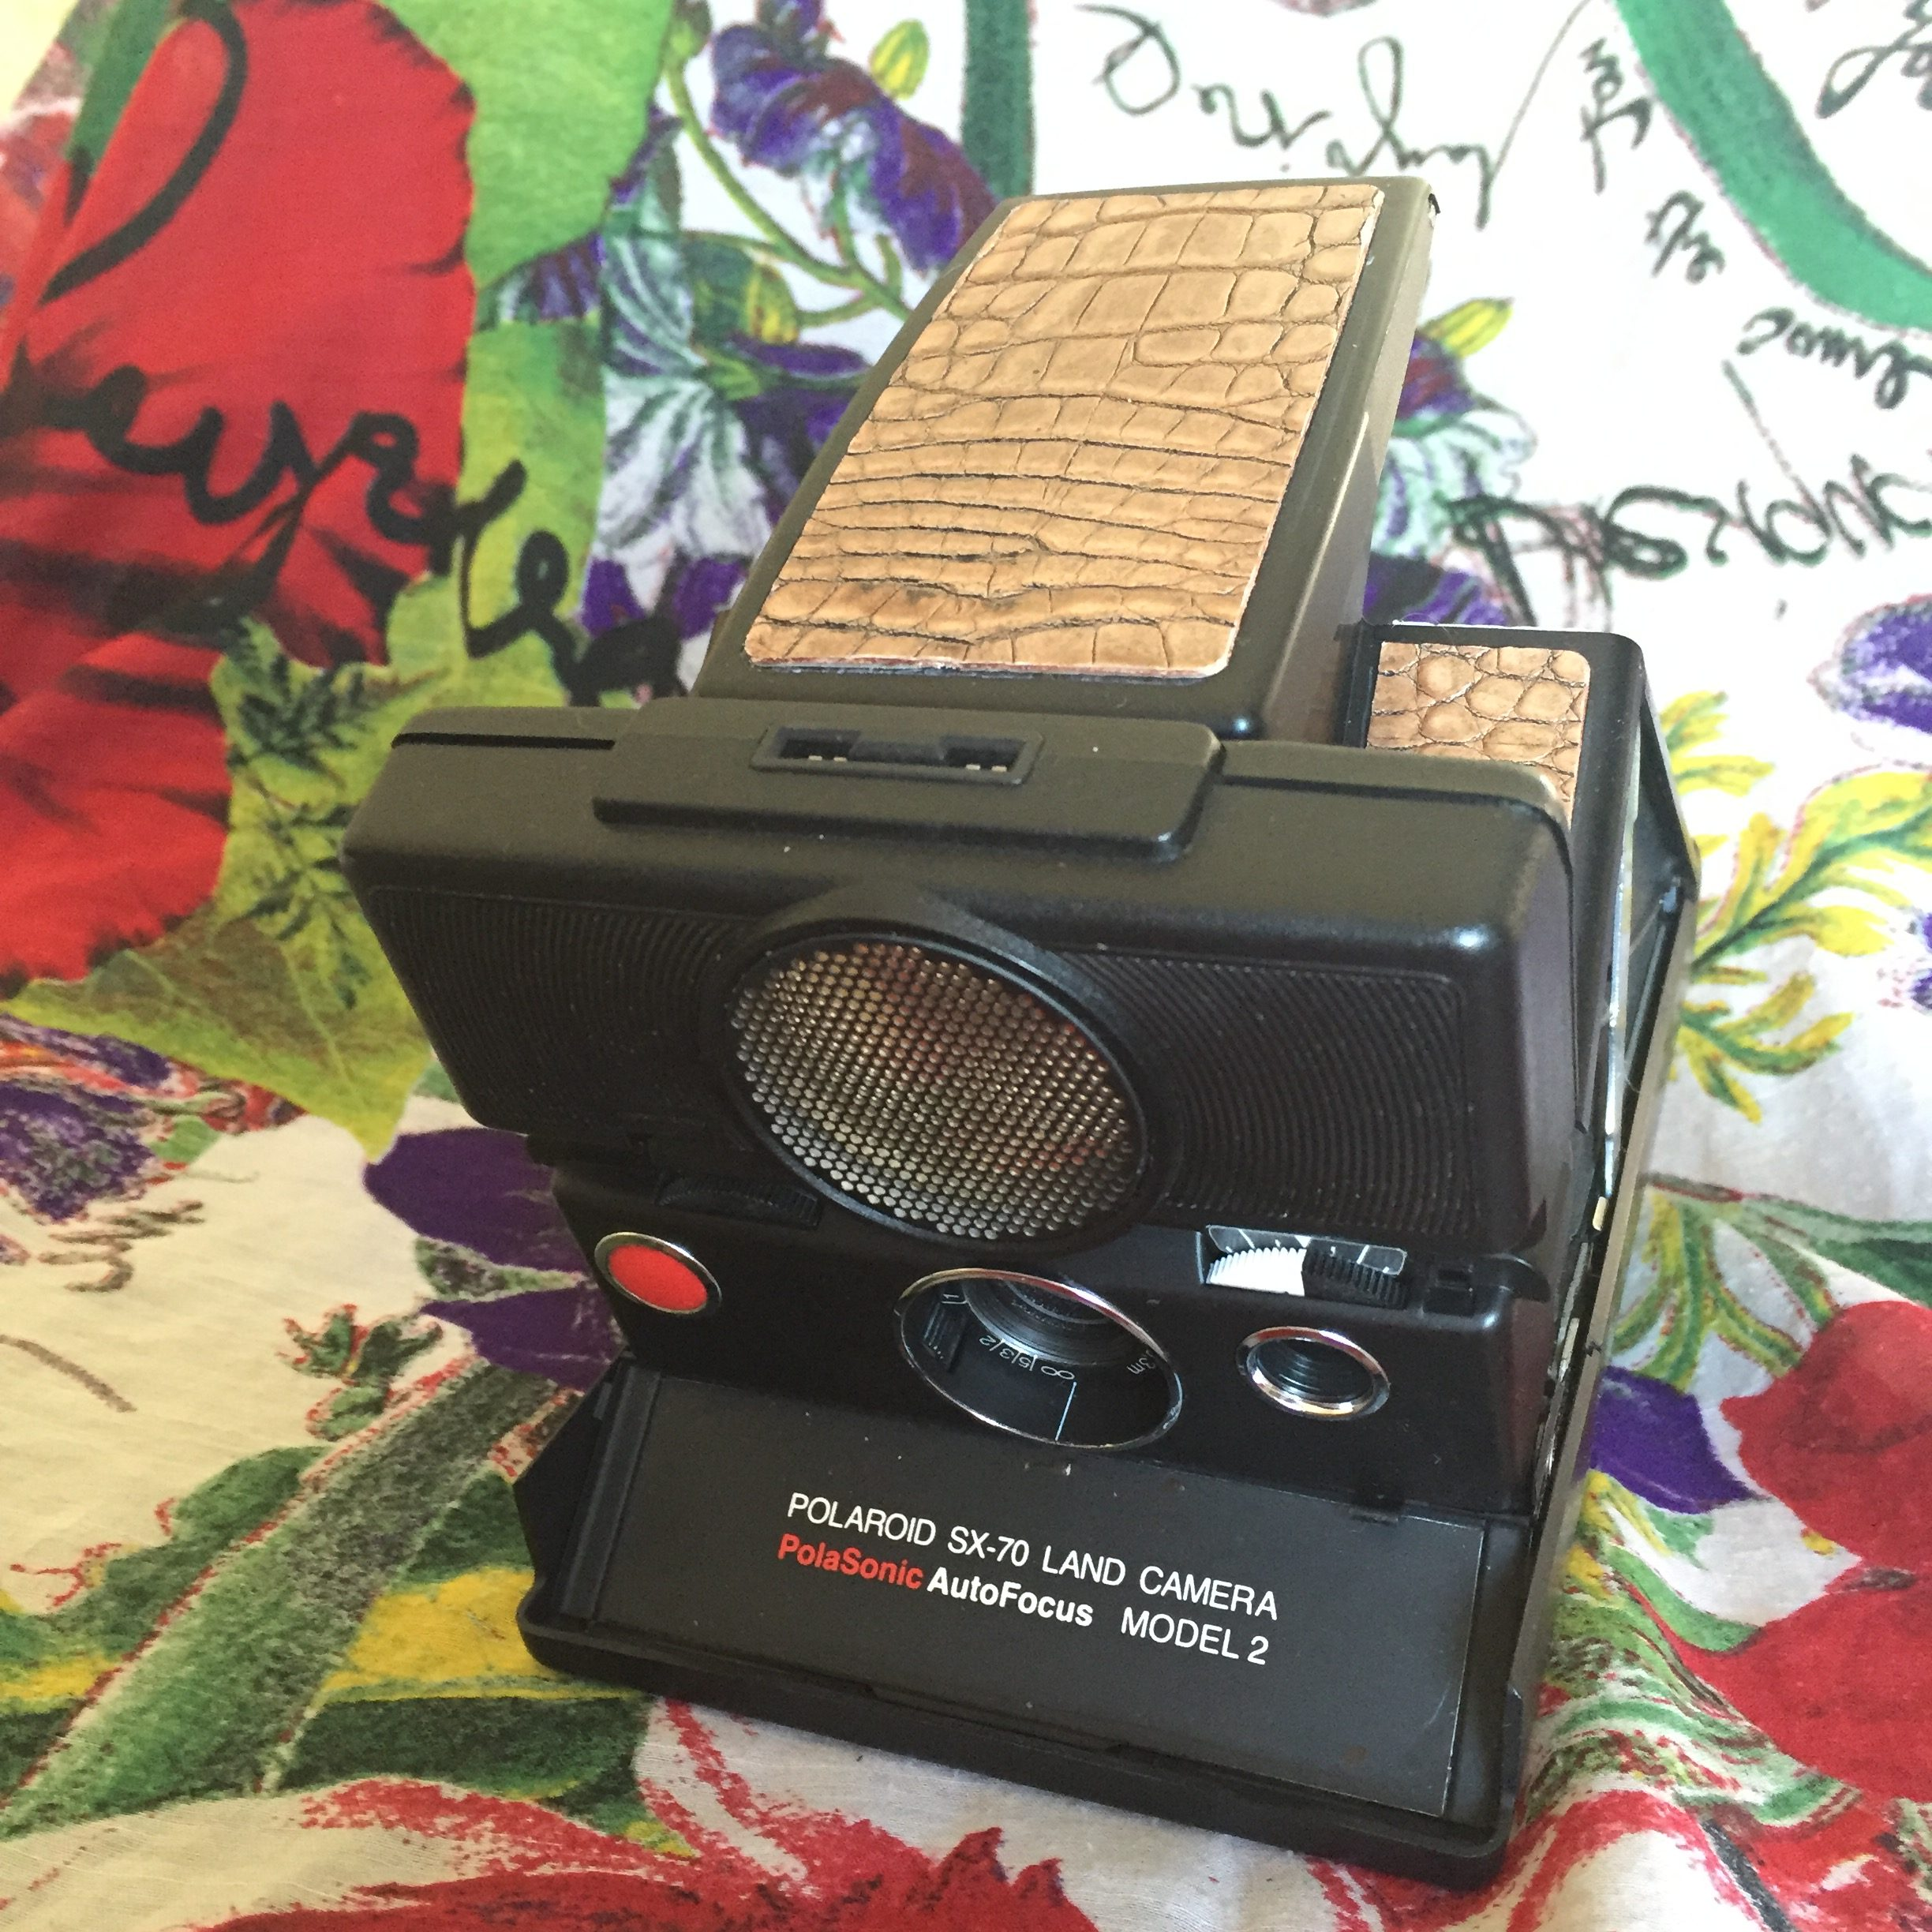 Polaroïd SX-70 Model 2